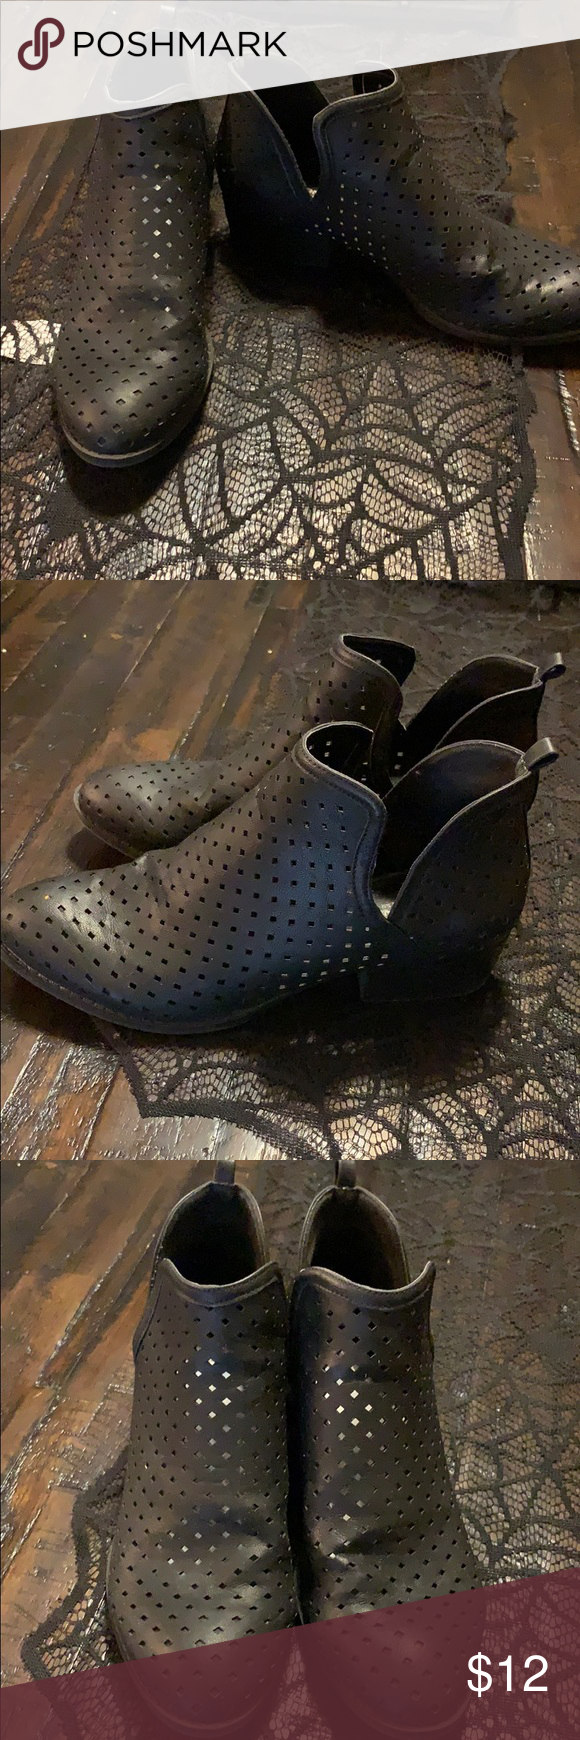 Black Arizona mesh ankle boots Good condition. Clean! Super cute for Fall with skinny jeans or a dress! Arizona Jean Company Shoes Ankle Boots & Booties #skinnyjeansandankleboots